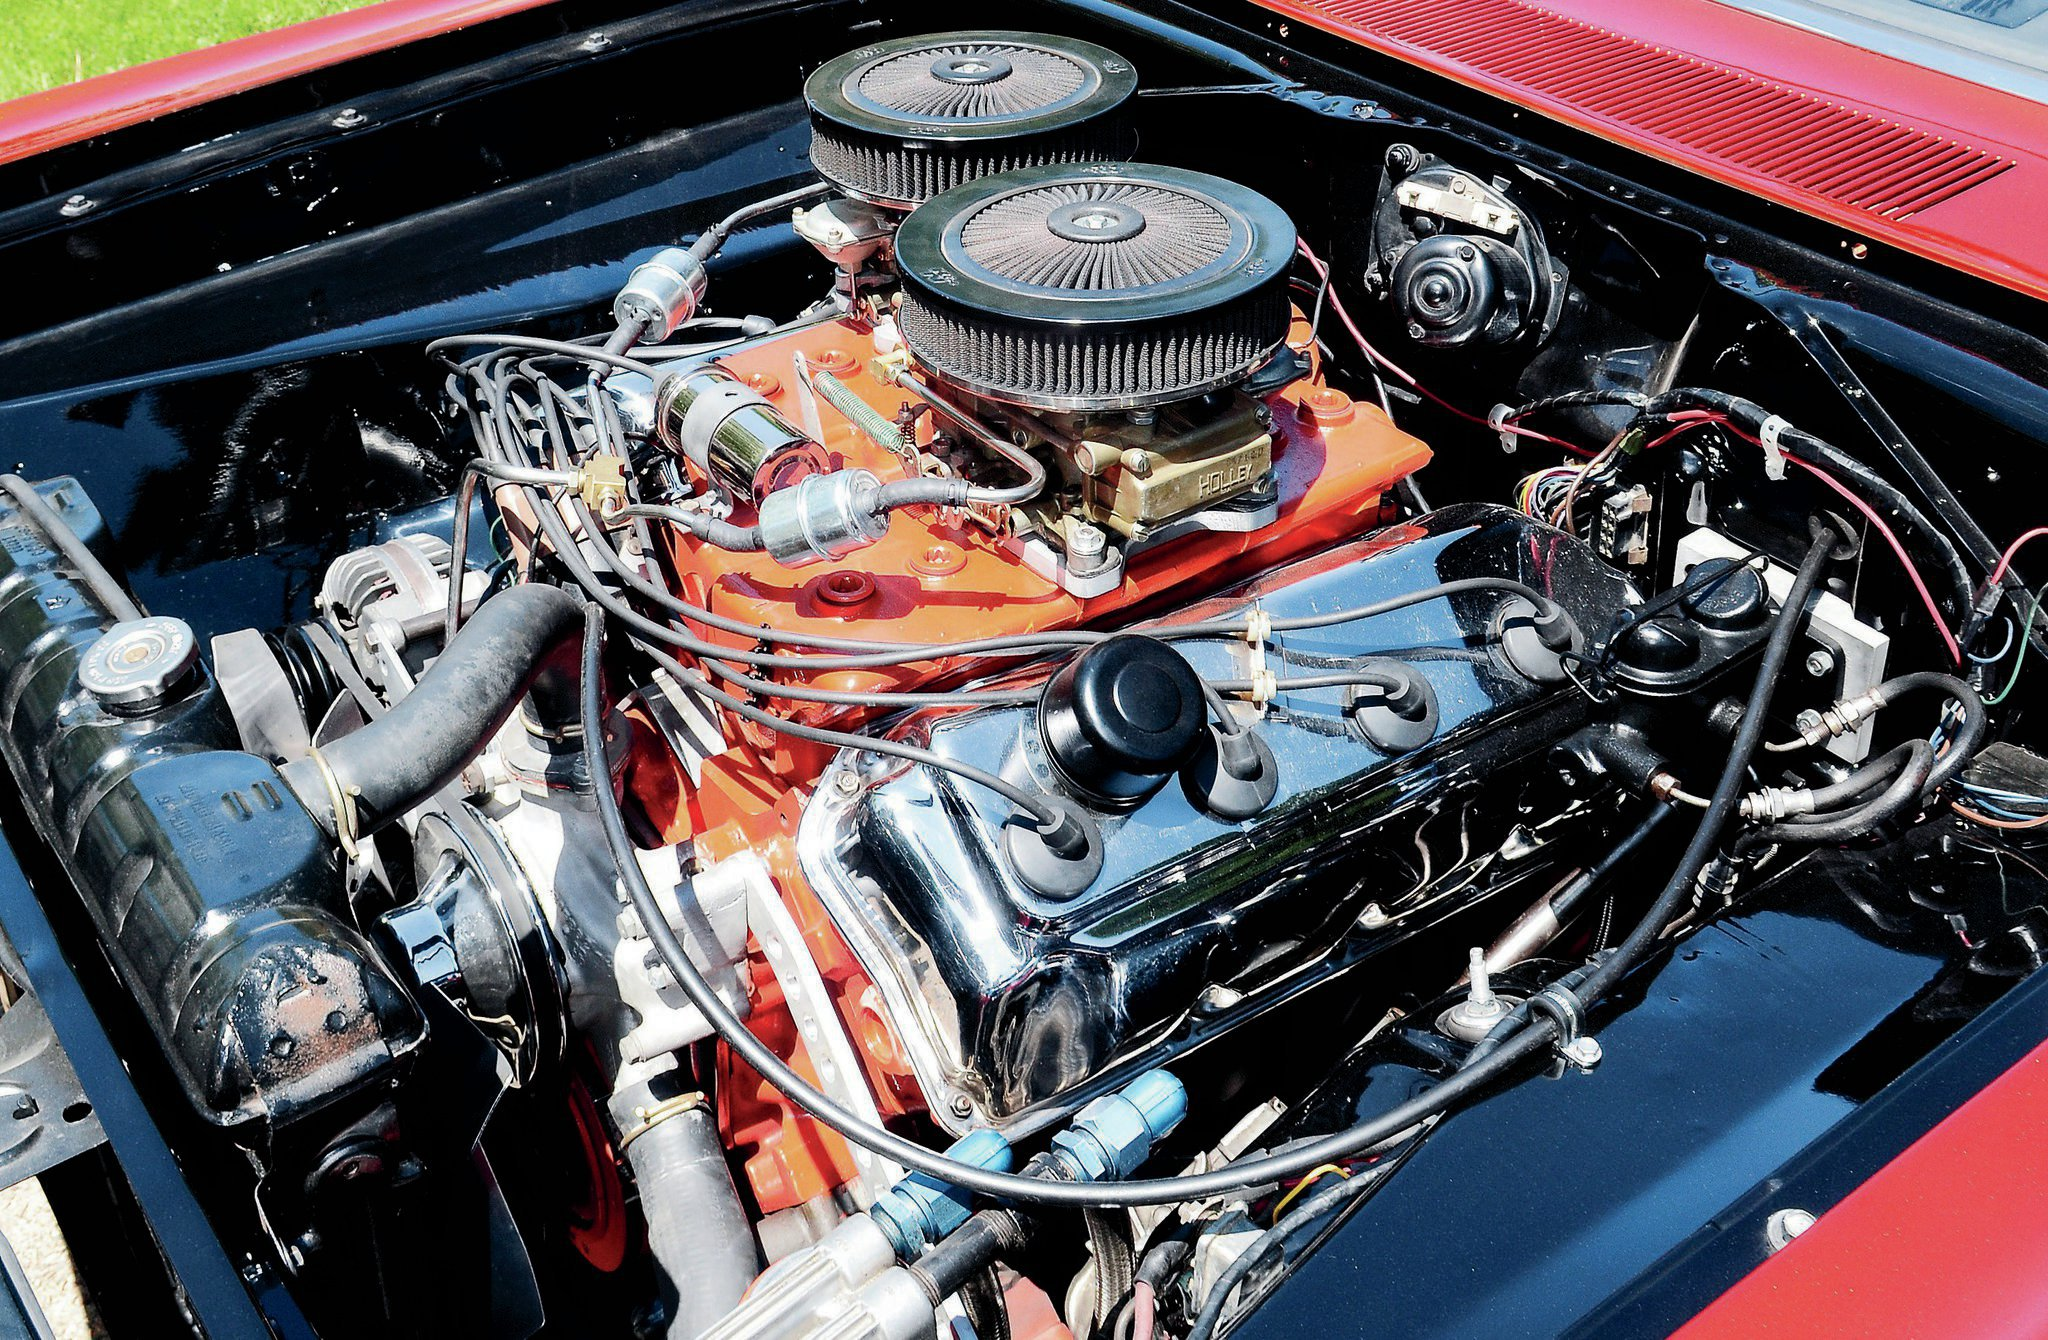 The Hemi in Dave's Dart is a mix of fresh and vintage components; the heads, intake, and ignition are from 1968.